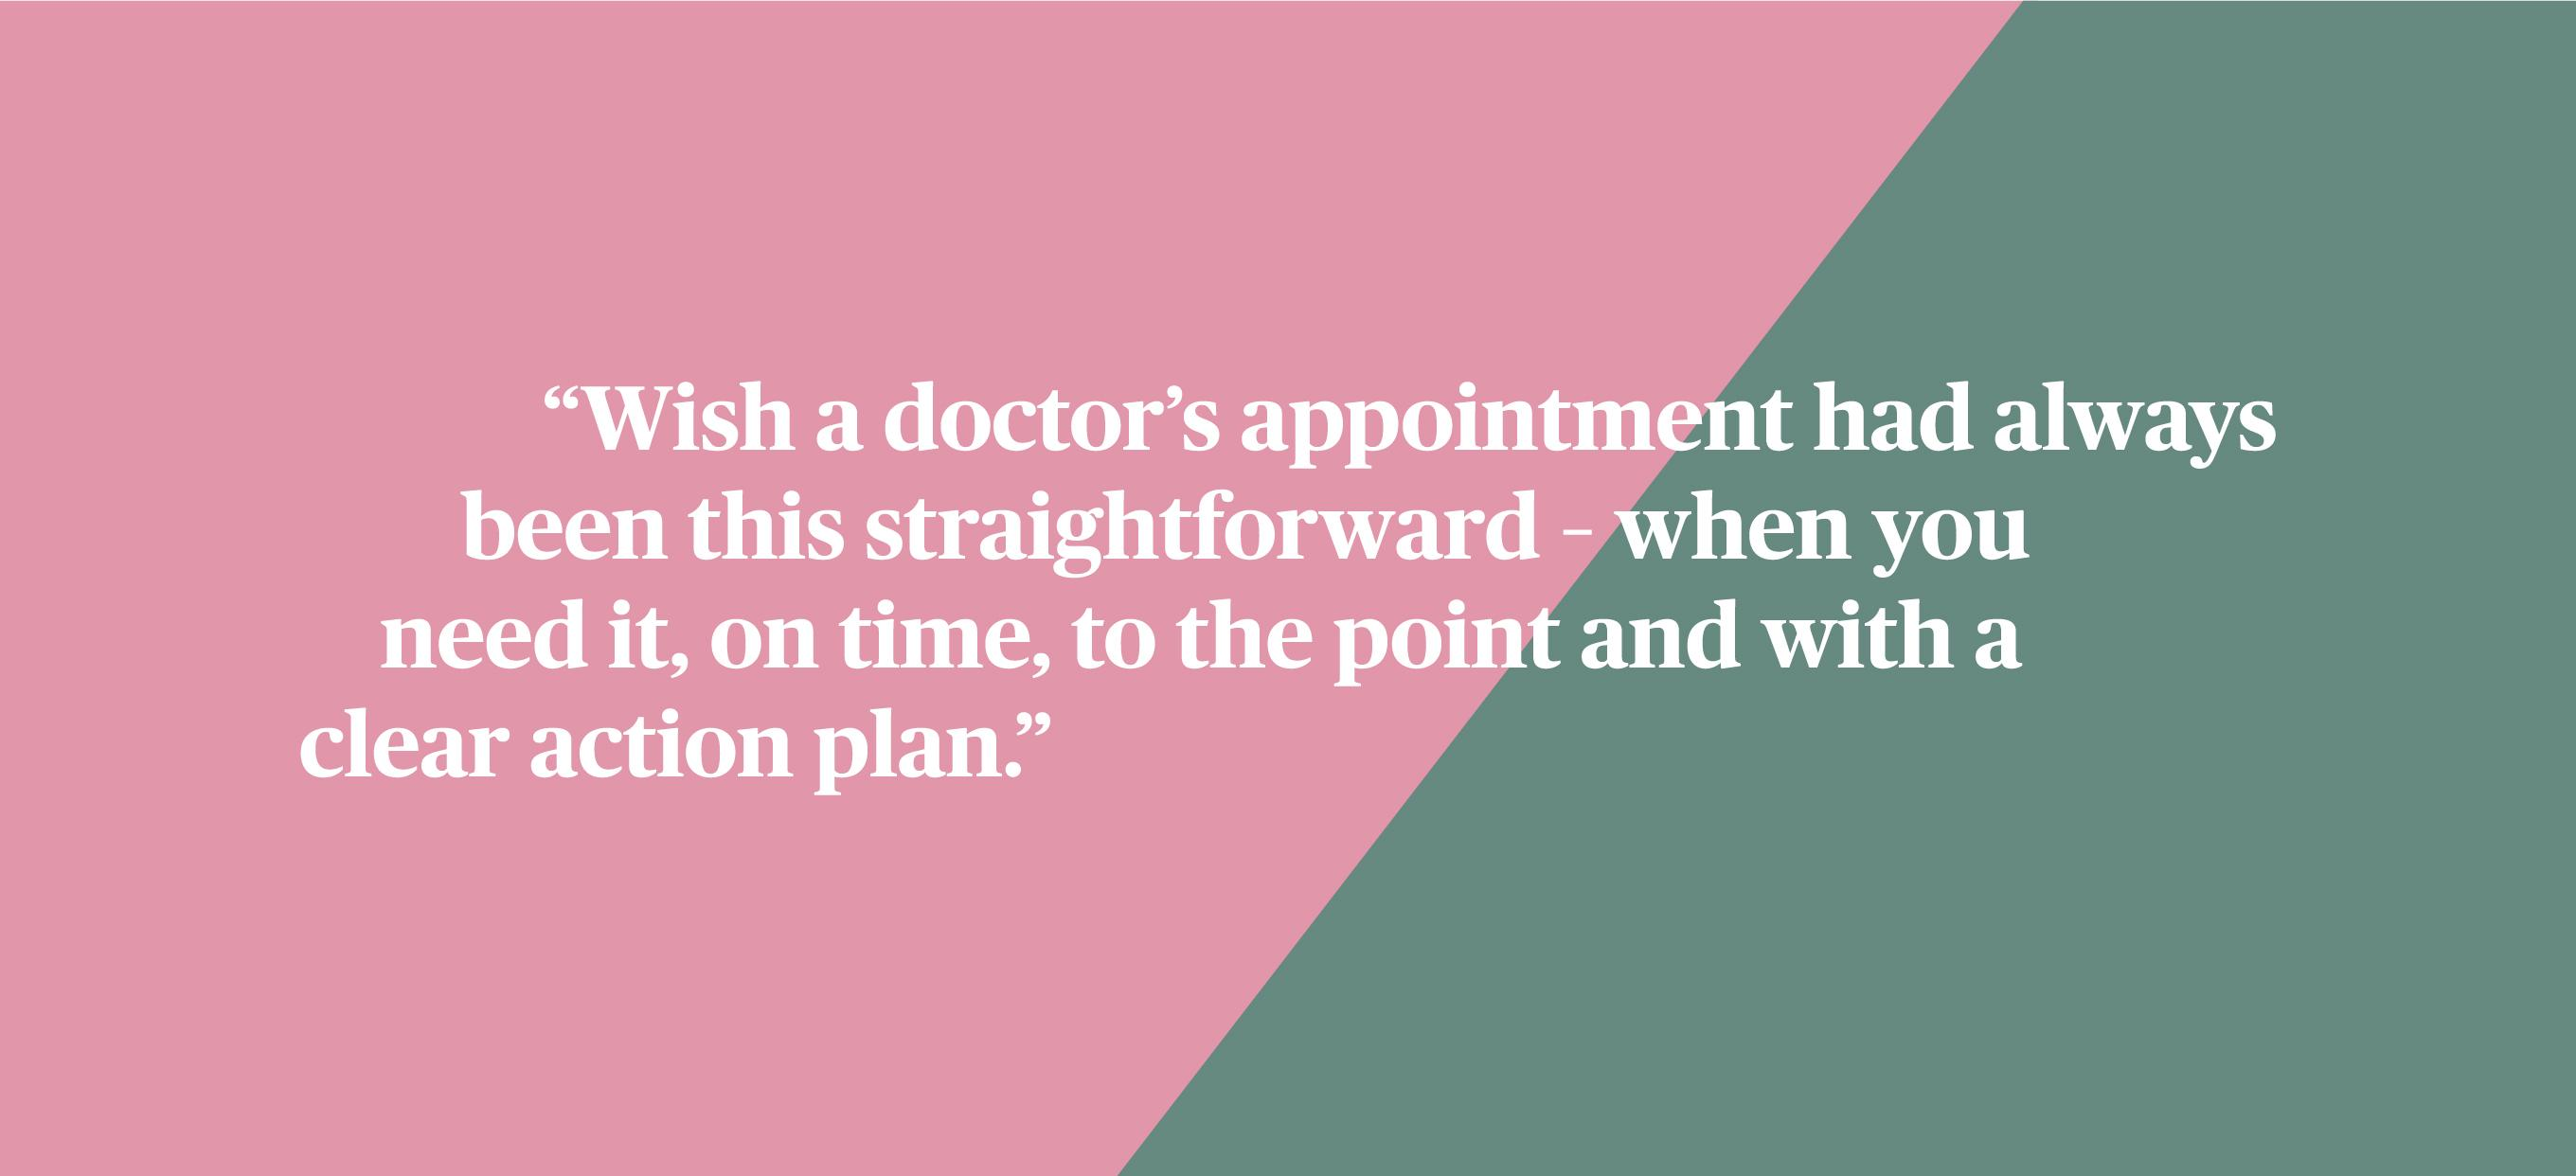 Wish a doctor's appointment had always been this straightforward - when you need it, on time, to the point and with a clear action plan.